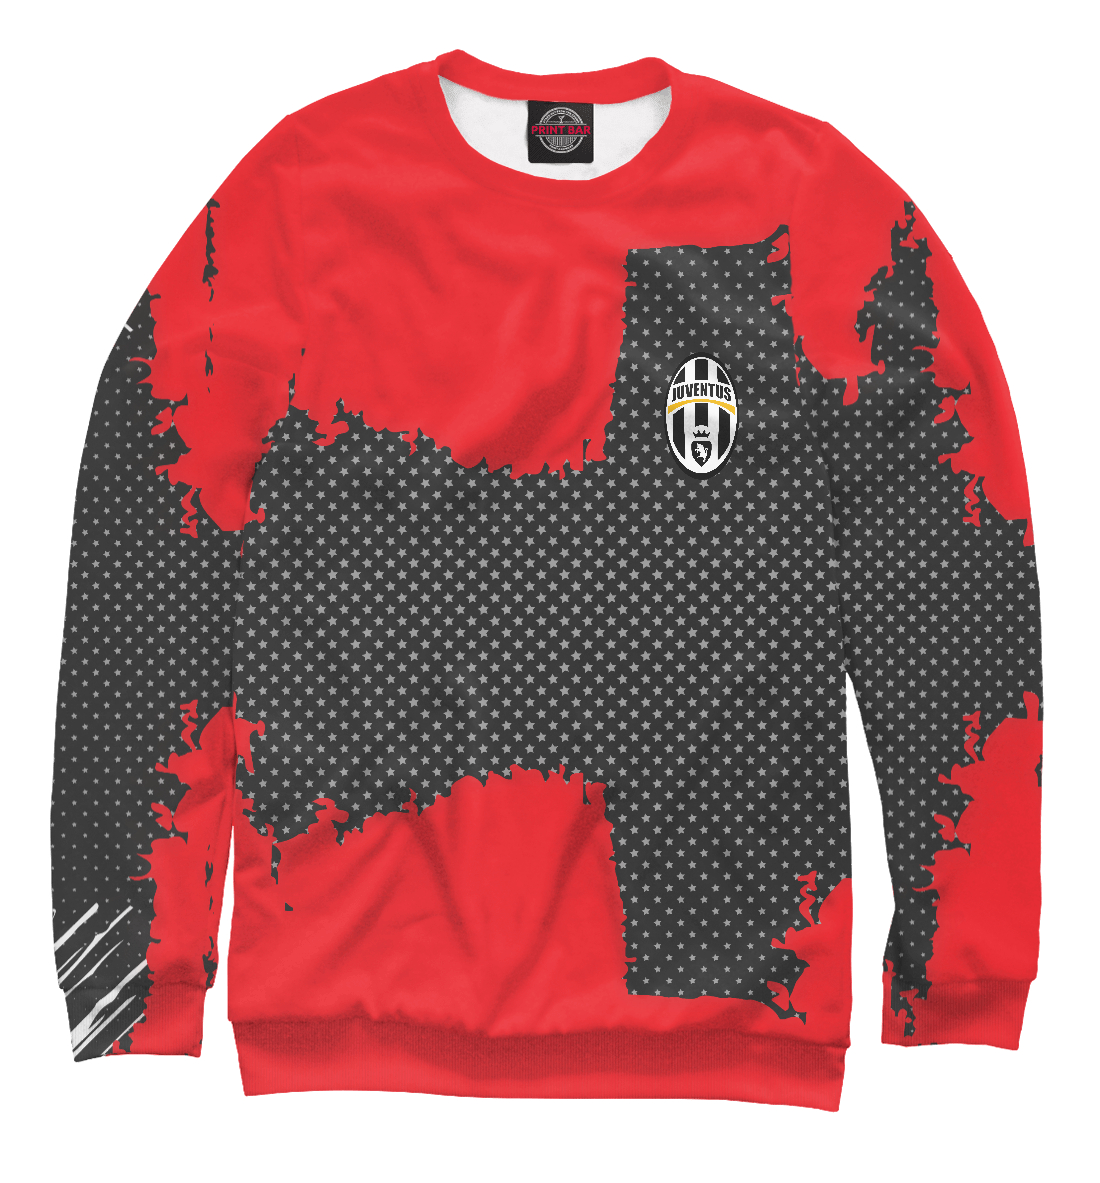 Купить Juventus sport collection, Printbar, Свитшоты, JUV-328225-swi-1